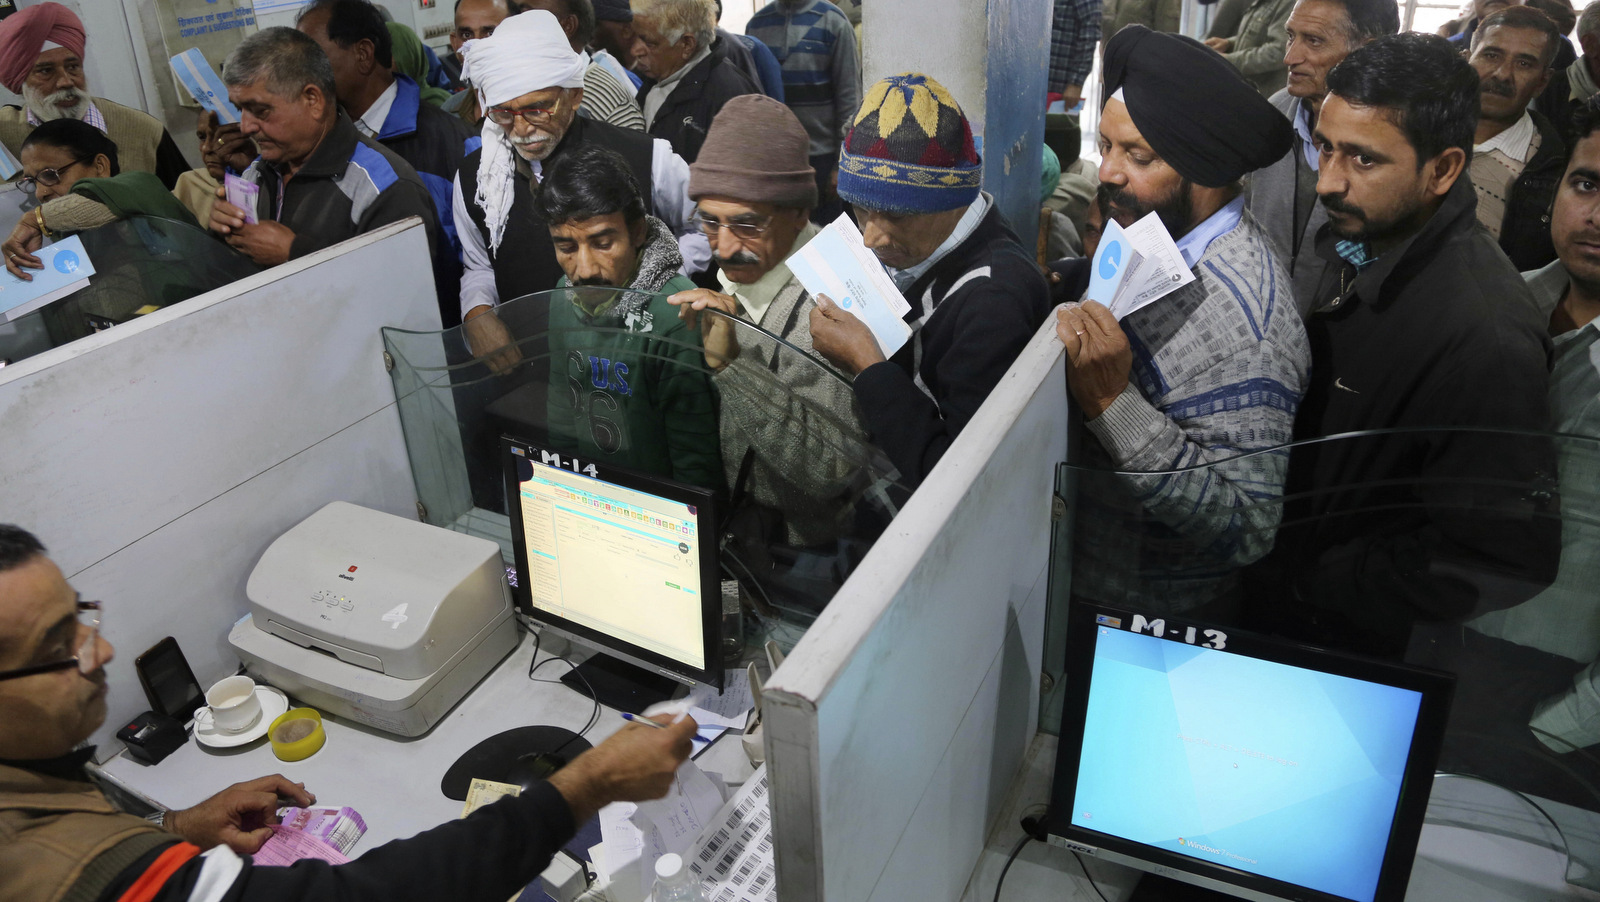 Indians stand in line to deposit discontinued notes in a bank in Jammu and Kashmir, India,, Dec. 30, 2016. India yanked most of its currency bills from circulation without warning on Nov. 8, delivering a jolt to the country's high-performing economy and leaving countless citizens scrambling for cash. (AP/Channi Anand)